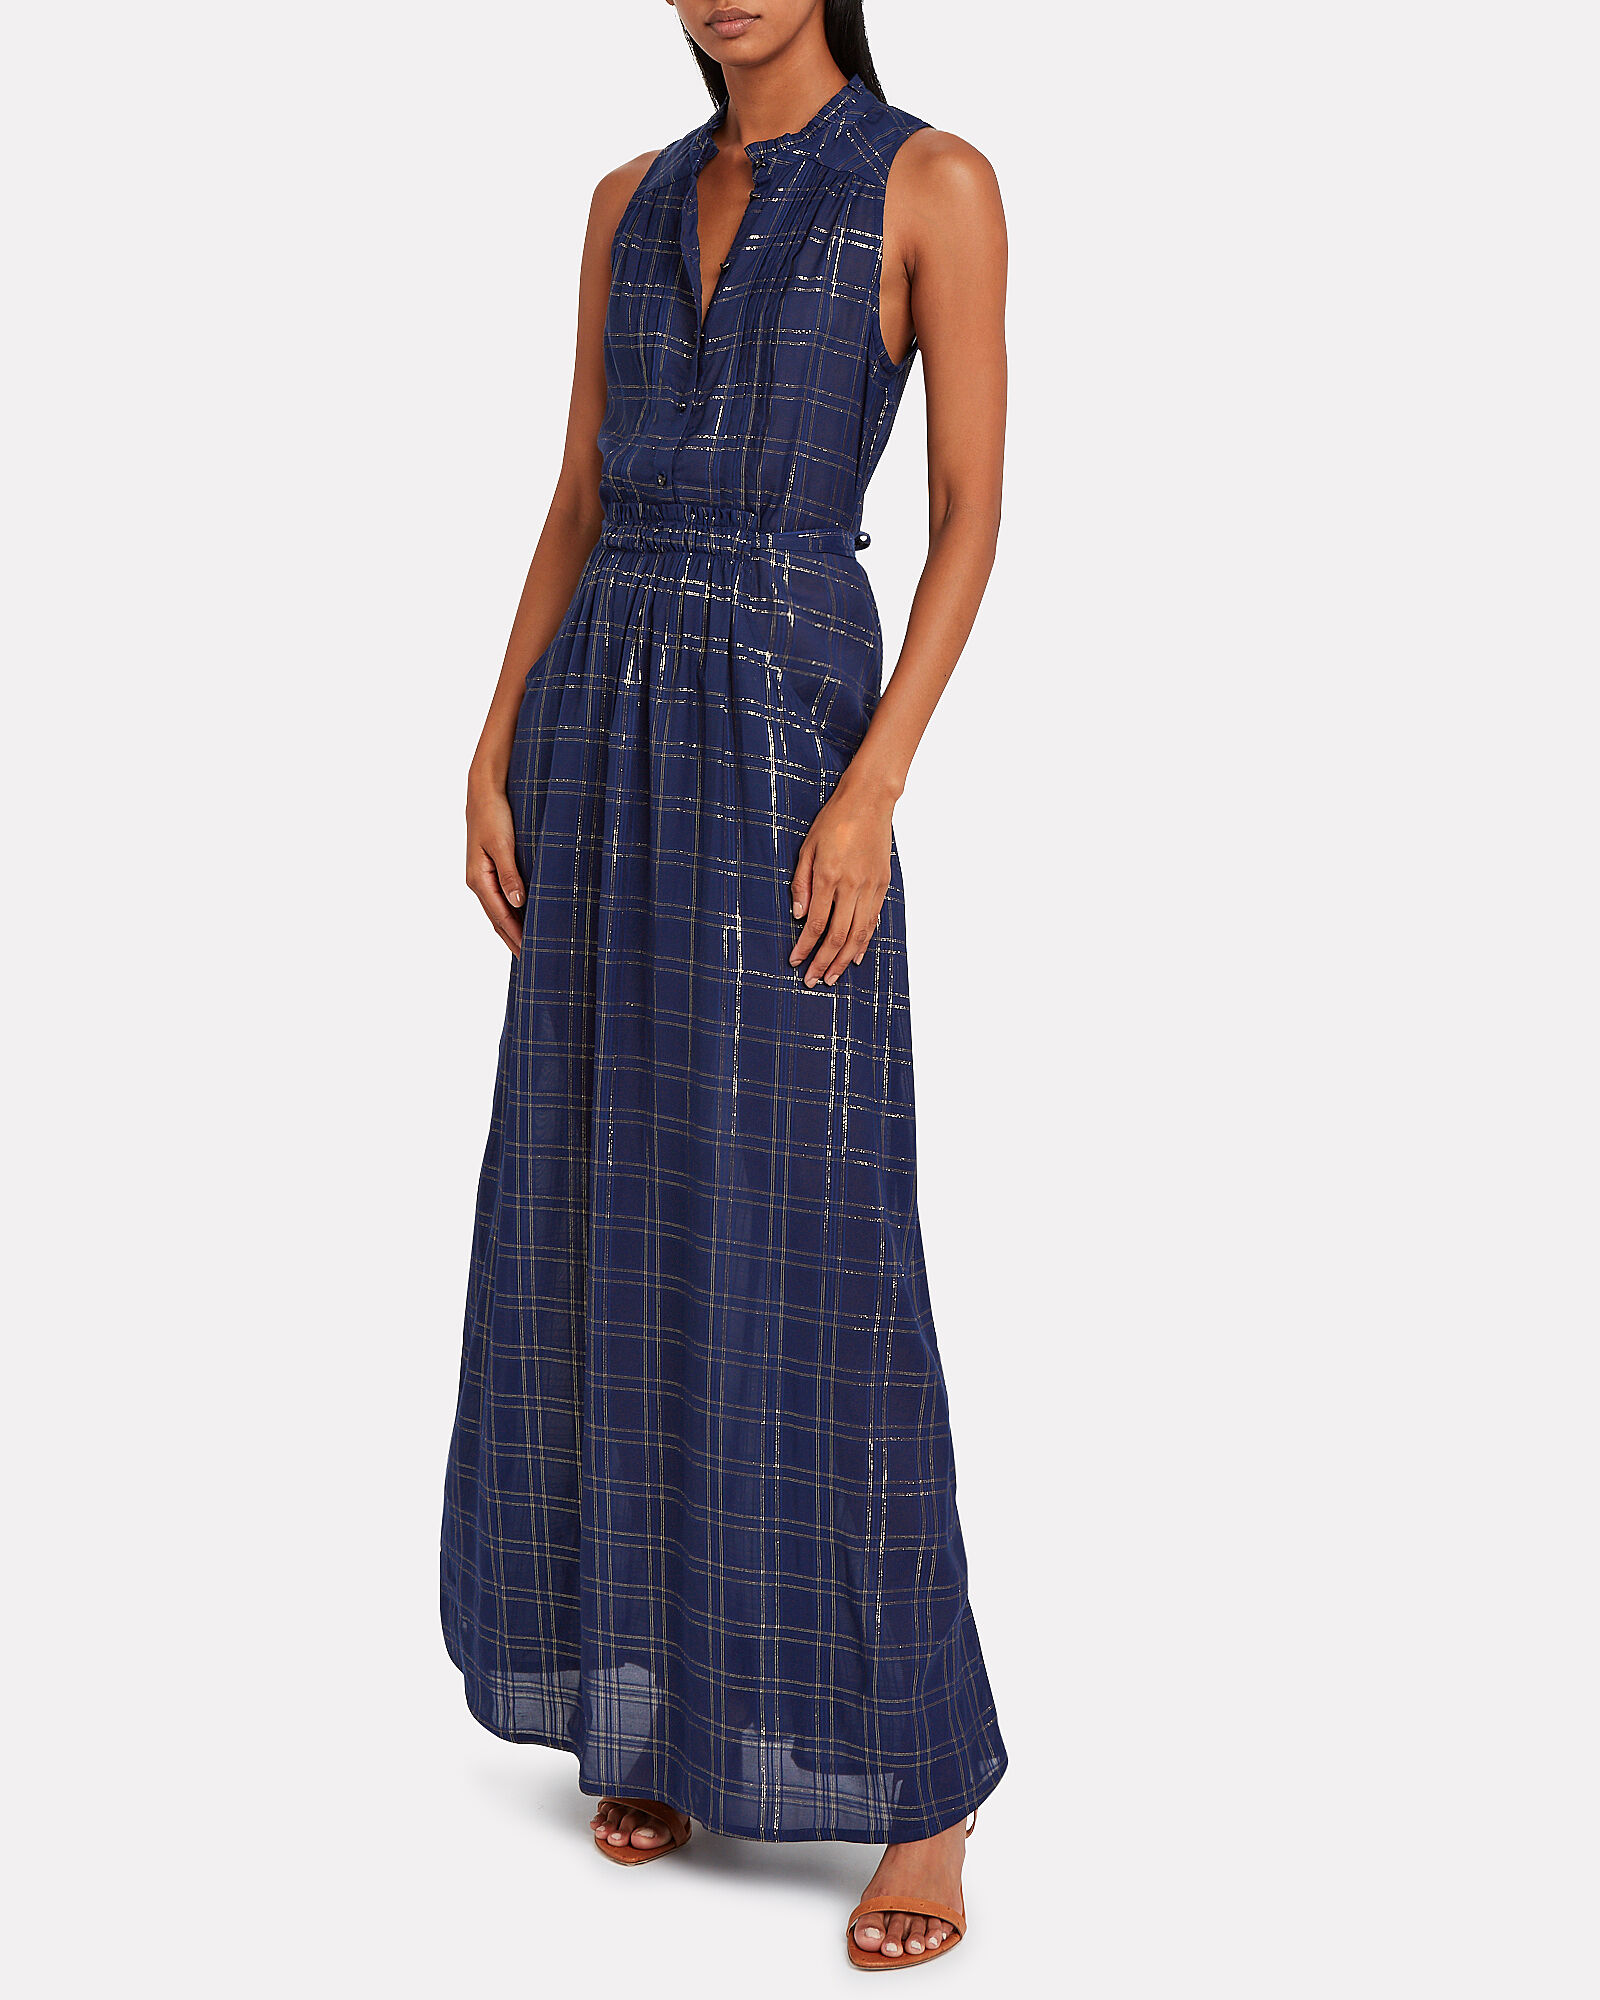 Dash Checked Sleeveless Dress, NAVY/CHECK, hi-res